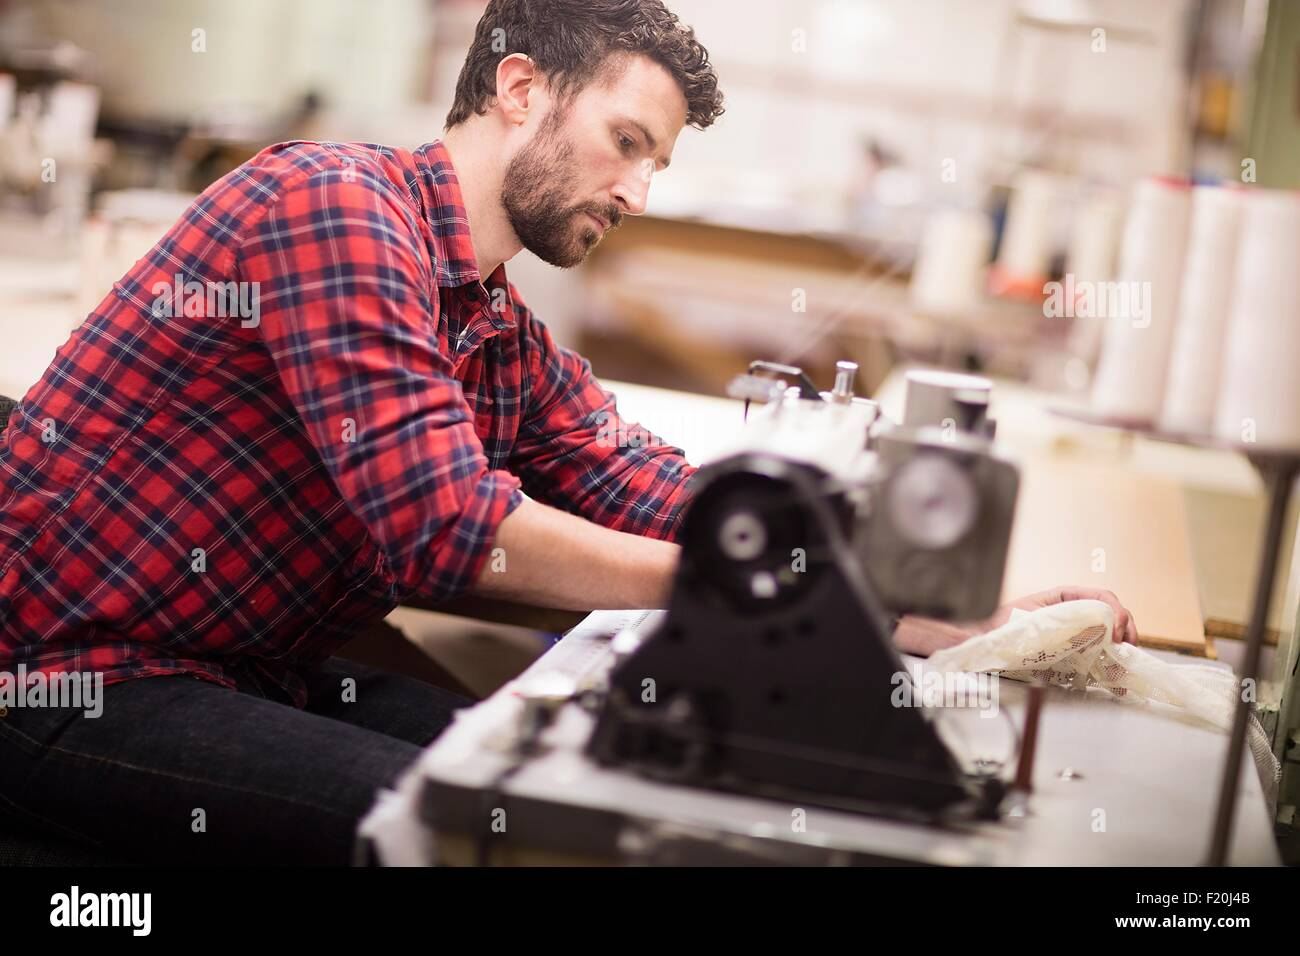 Male weaver using sewing machine in old textile mill - Stock Image